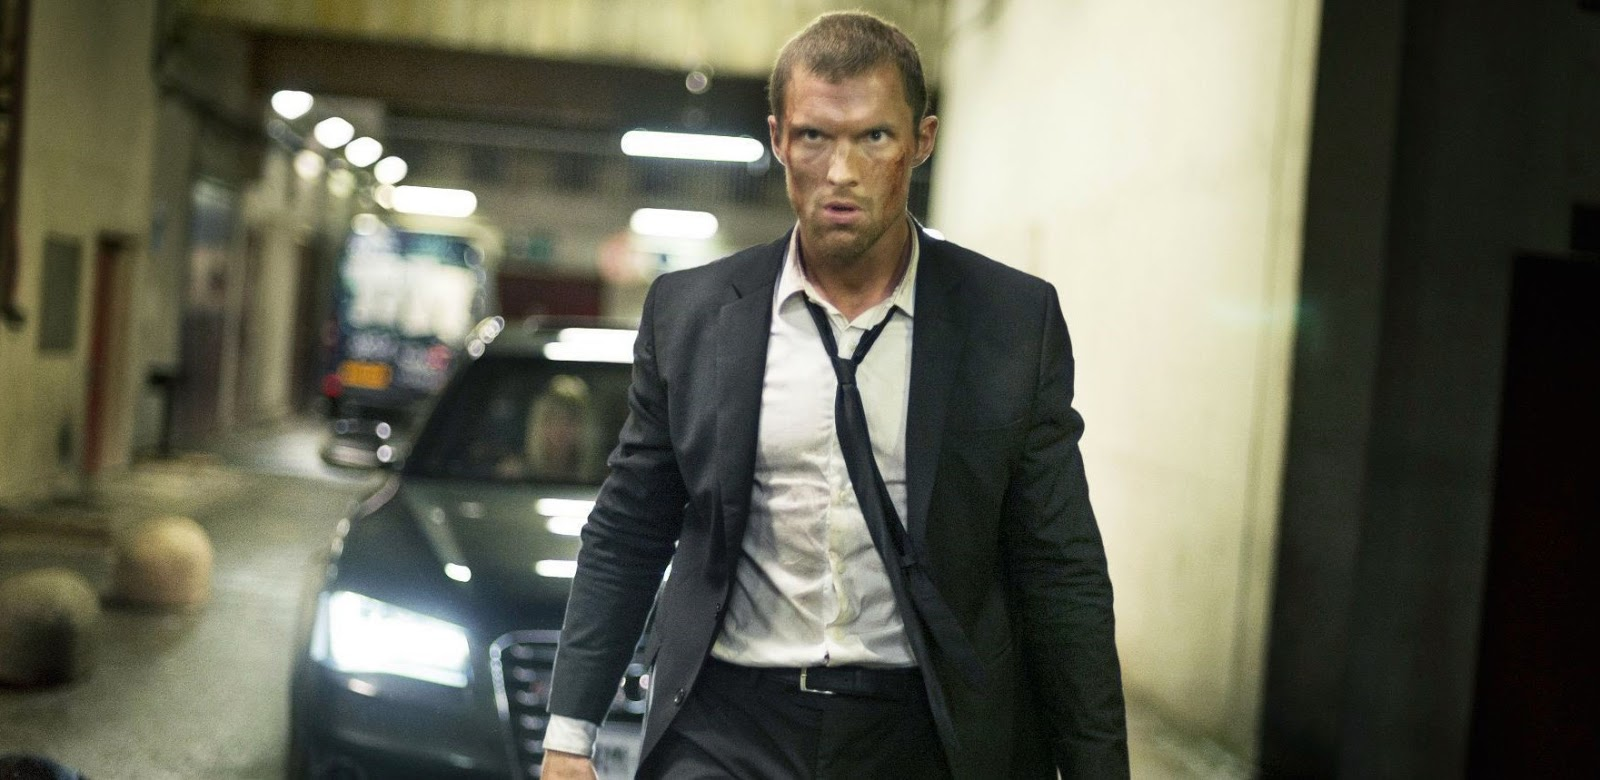 The Transporter Refueled | Assista ao trailer do reinicio de Carga Explosiva, sem Jason Statham